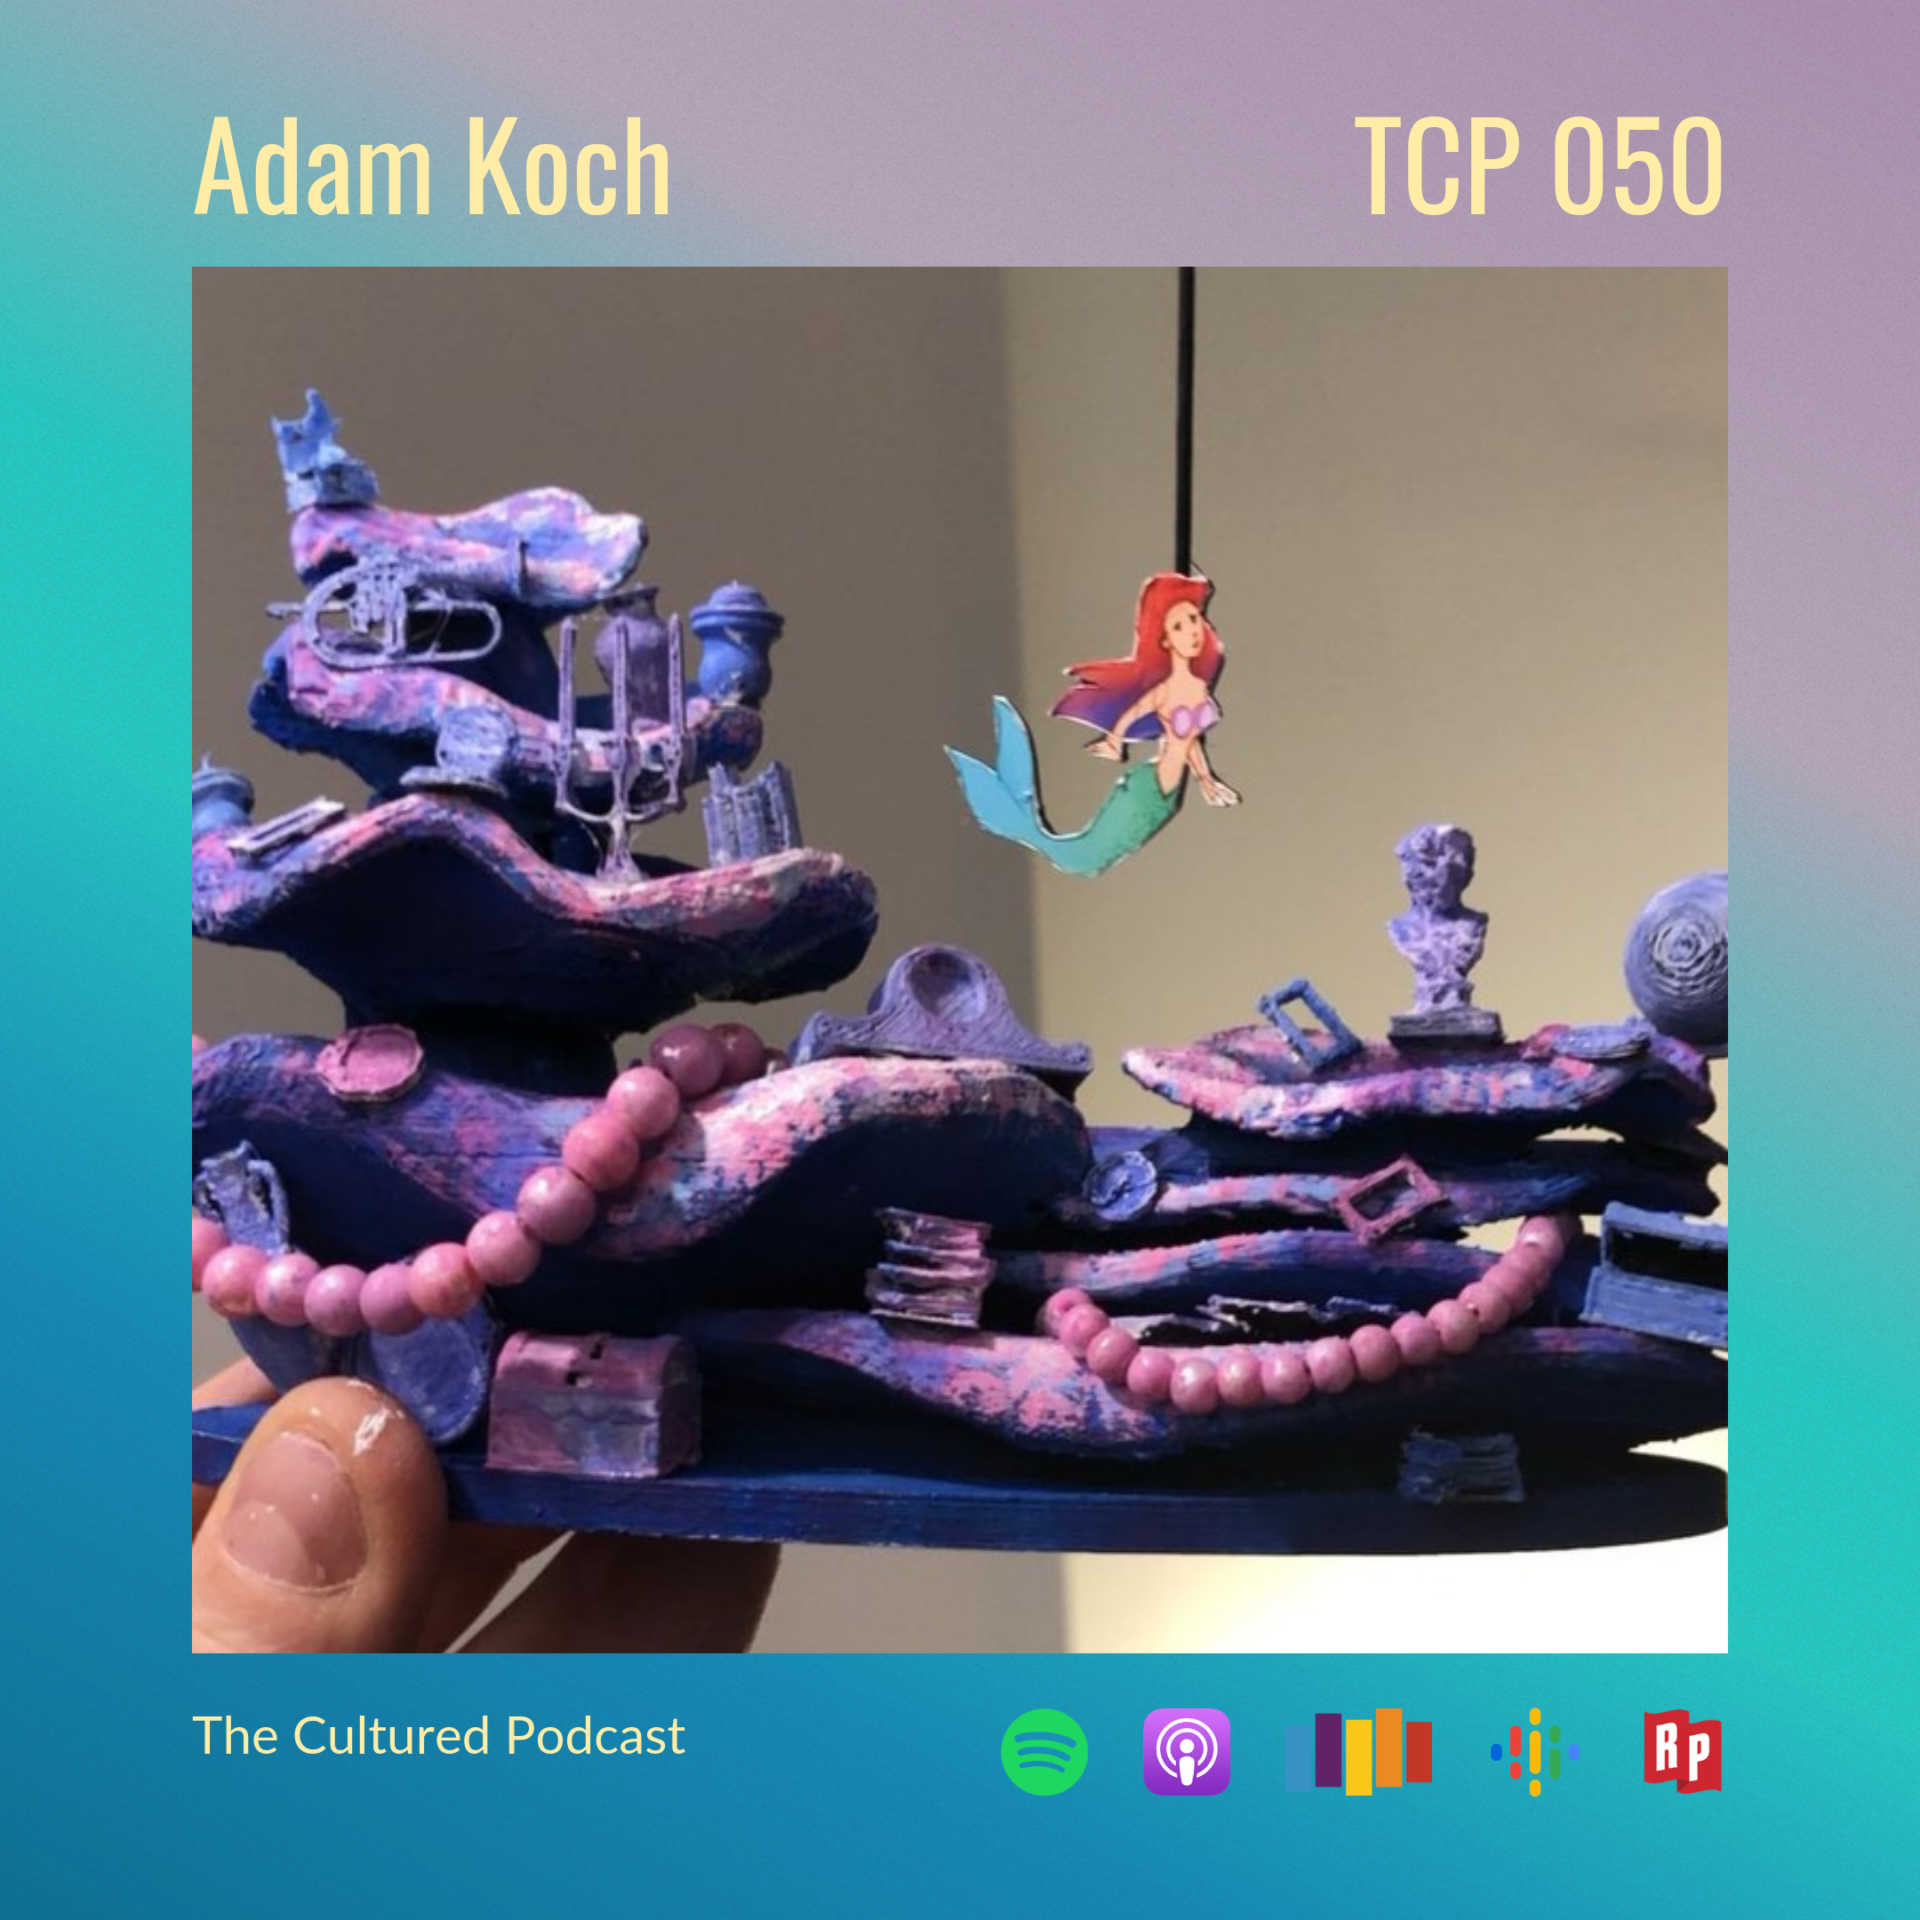 On this episode of The Cultured Podcast we meet Adam Koch, who does more than design beautiful sets - he builds one-of-a-kind theatrical experiences that immerse wide-eyed audiences into other worlds.